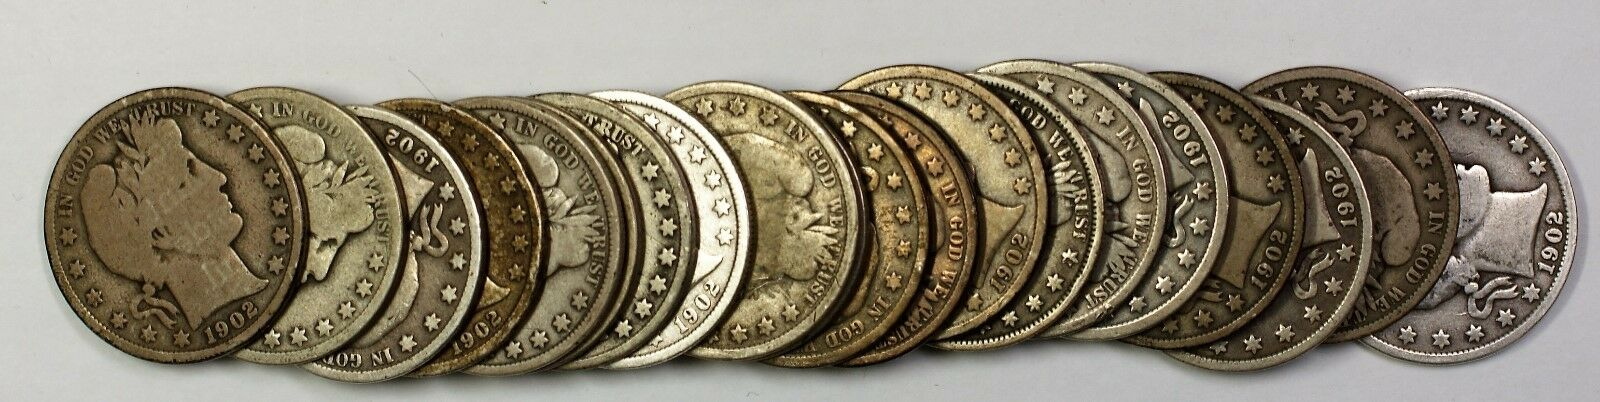 1904 Barber Half Dollar 50c Roll 20 Circulated 90% Old Silver Coins Lot